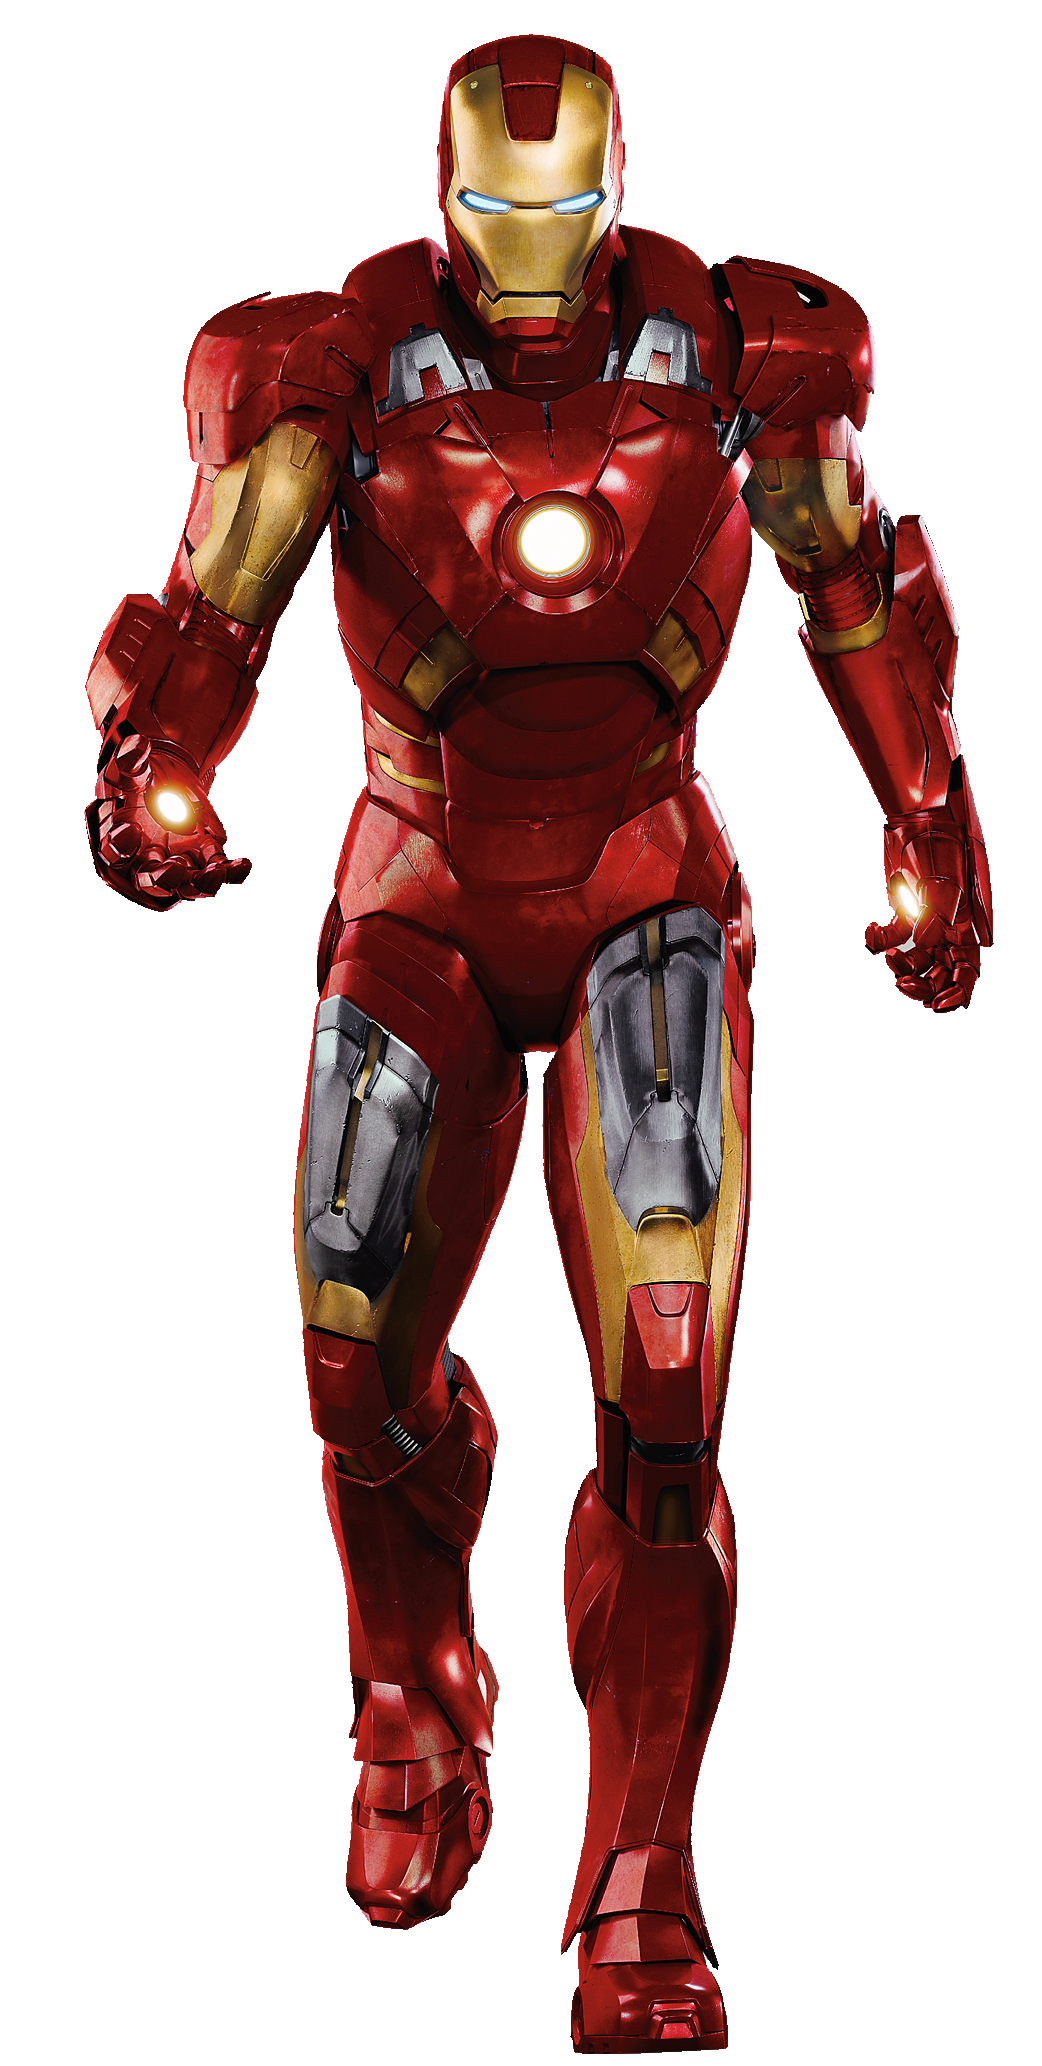 image iron man marvel movies fandom powered by wikia. Black Bedroom Furniture Sets. Home Design Ideas